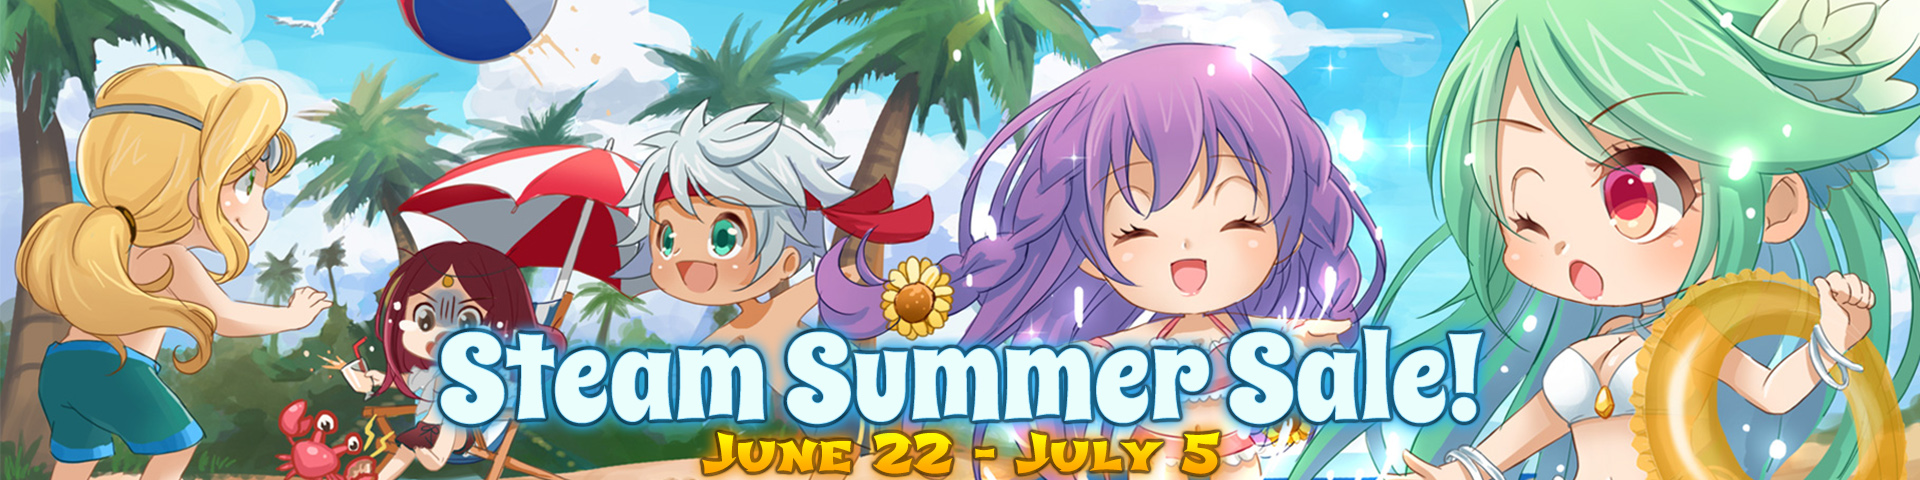 Steam Summer Sale!